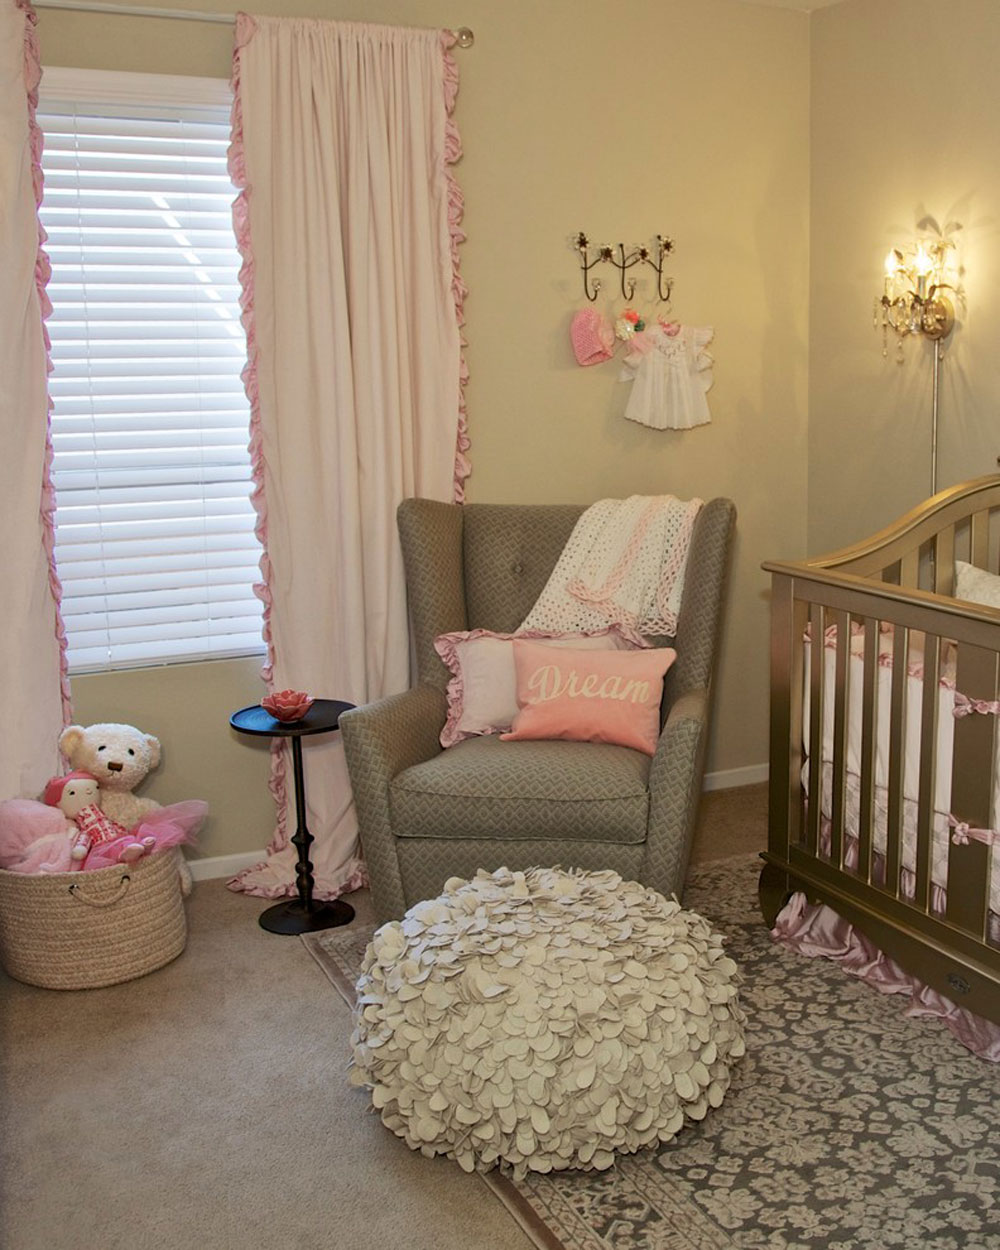 51 nursery color schemes for your baby's room